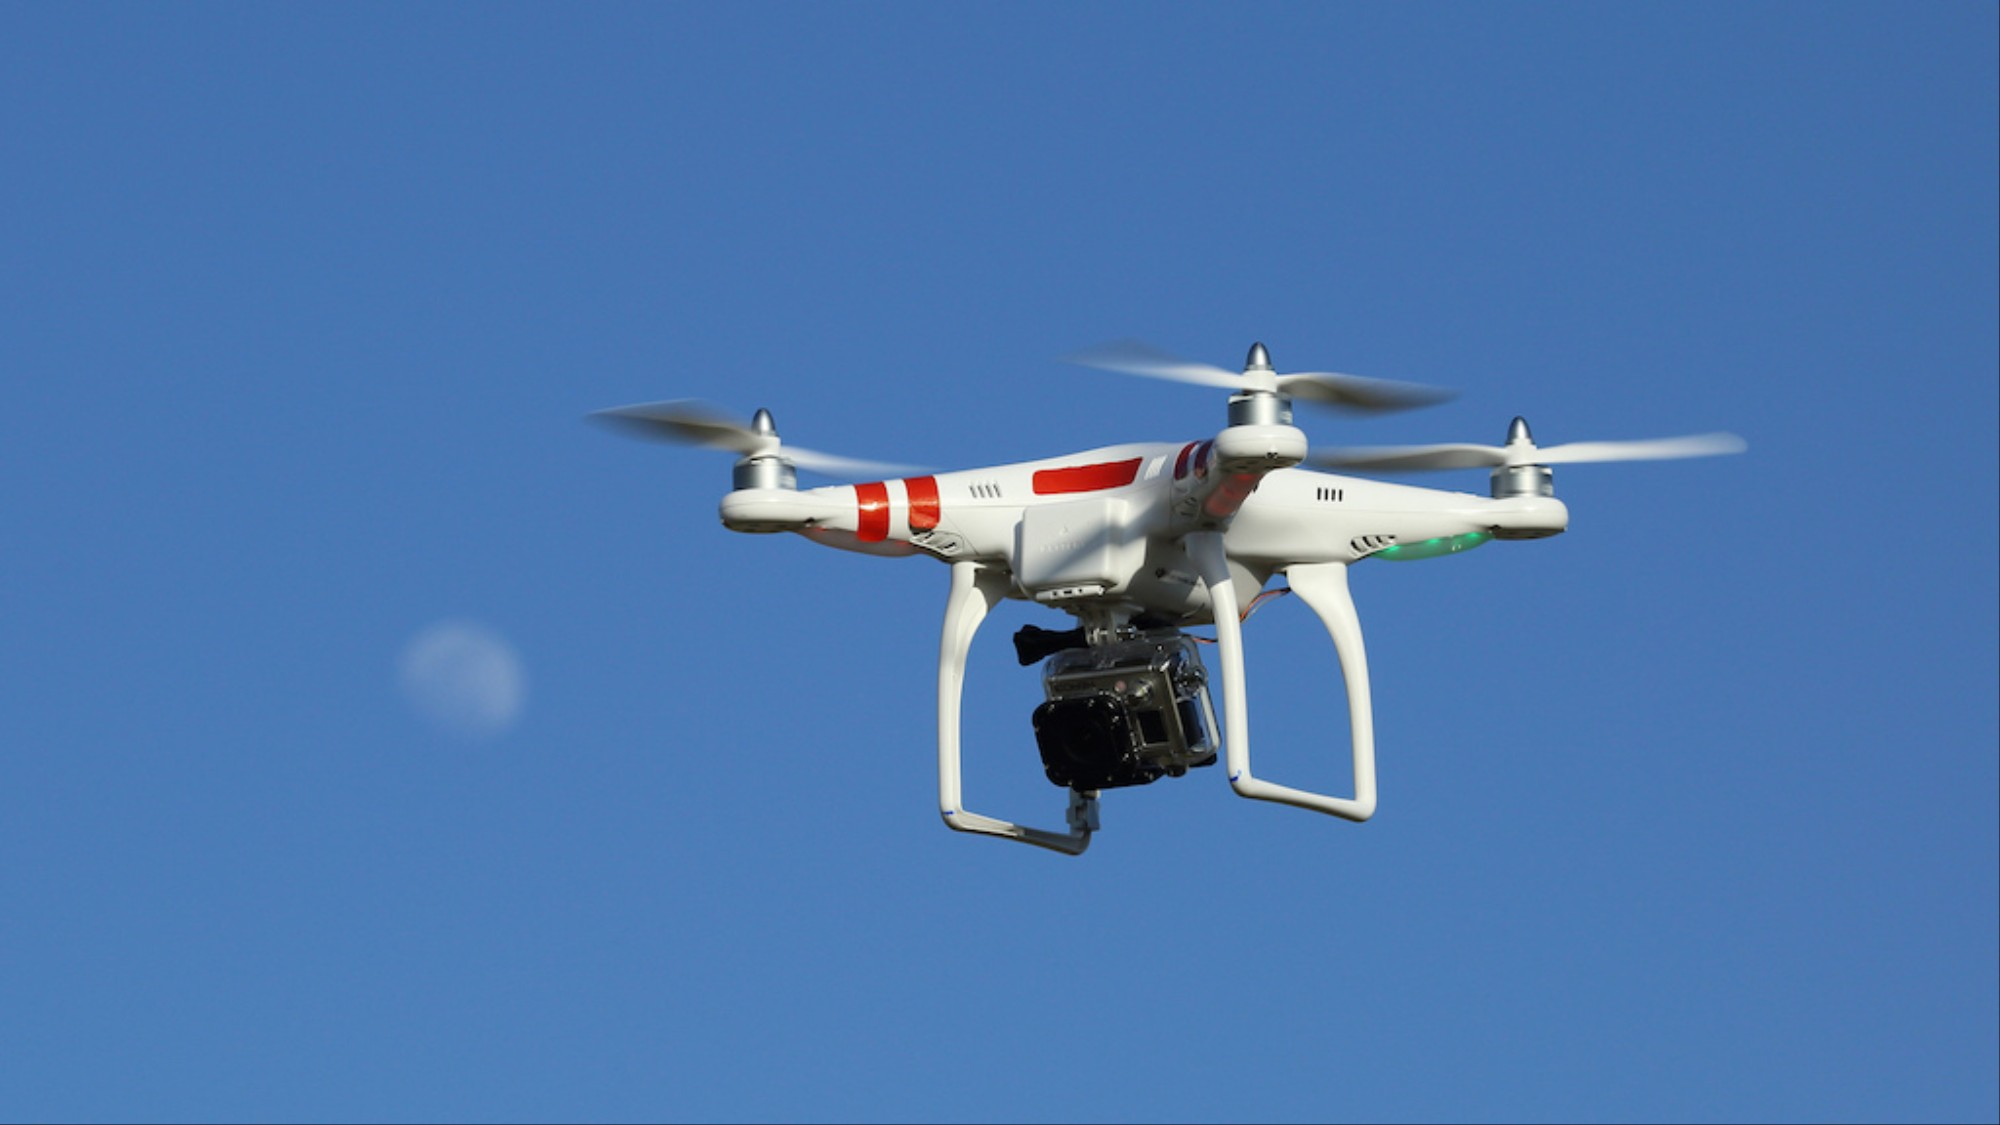 Drone Lovers Aren't Too Excited About Possible FAA